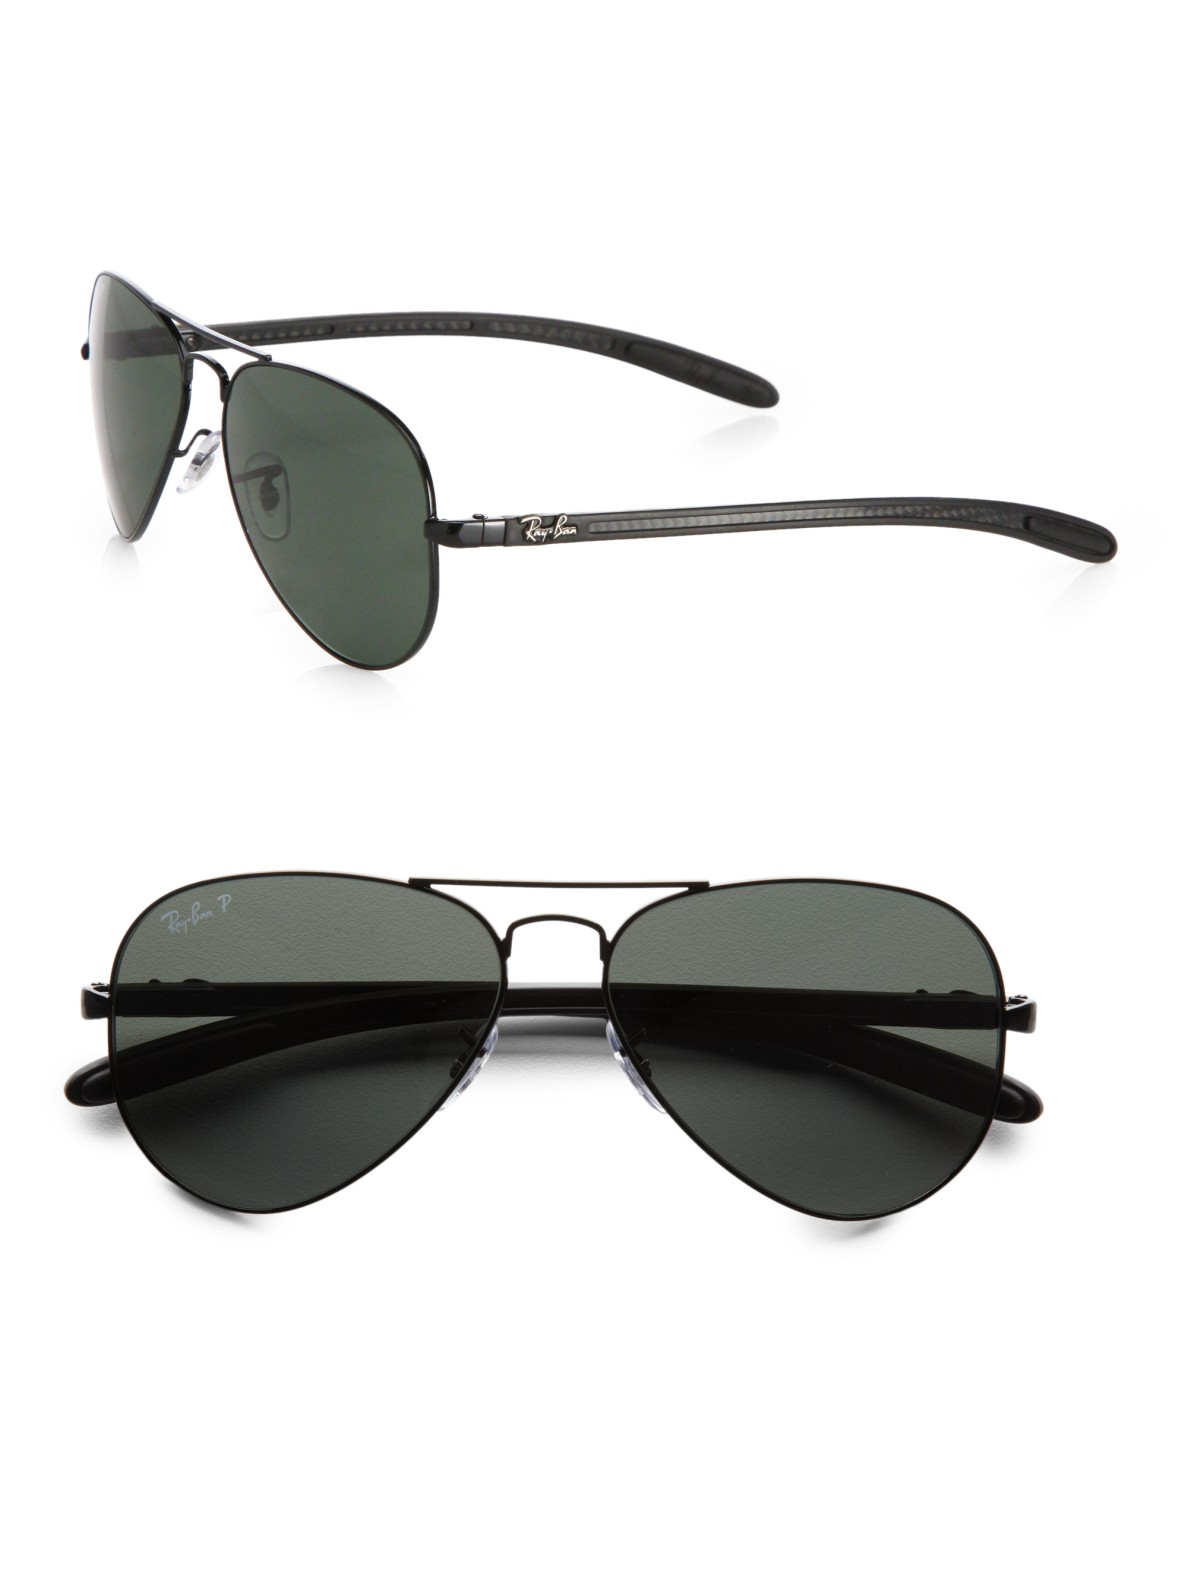 Ray-ban Tech Aviator Sunglasses in Black for Men - Save 6% ...